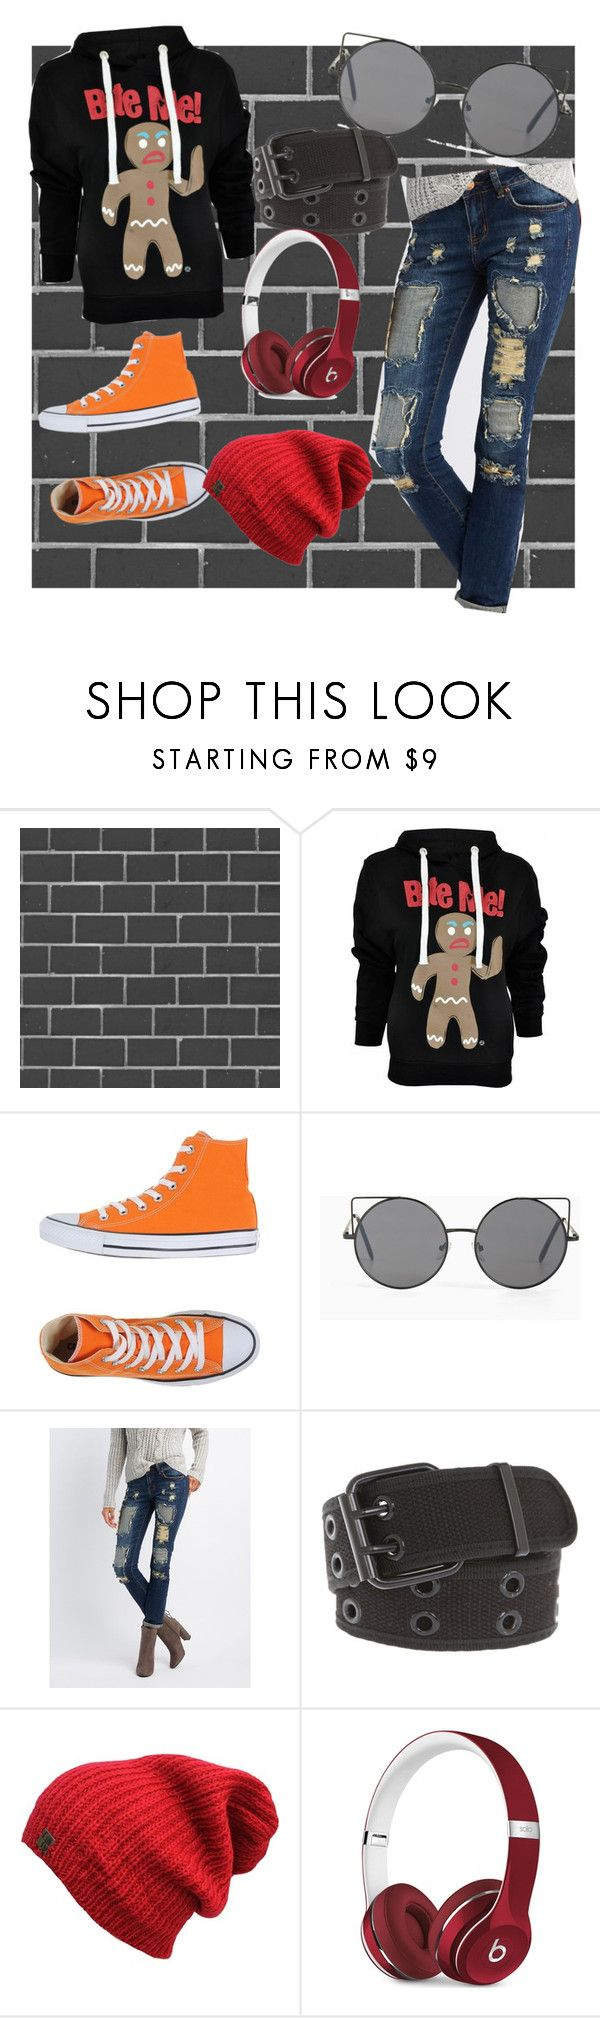 """The irony of wearing that shirt during a zombie apocalypse"" by lrdart ❤ liked on Polyvore featuring Debbie McKeegan, Goodie Two Sleeves, Converse, Torrid, Charlotte Russe and Beats by Dr. Dre"